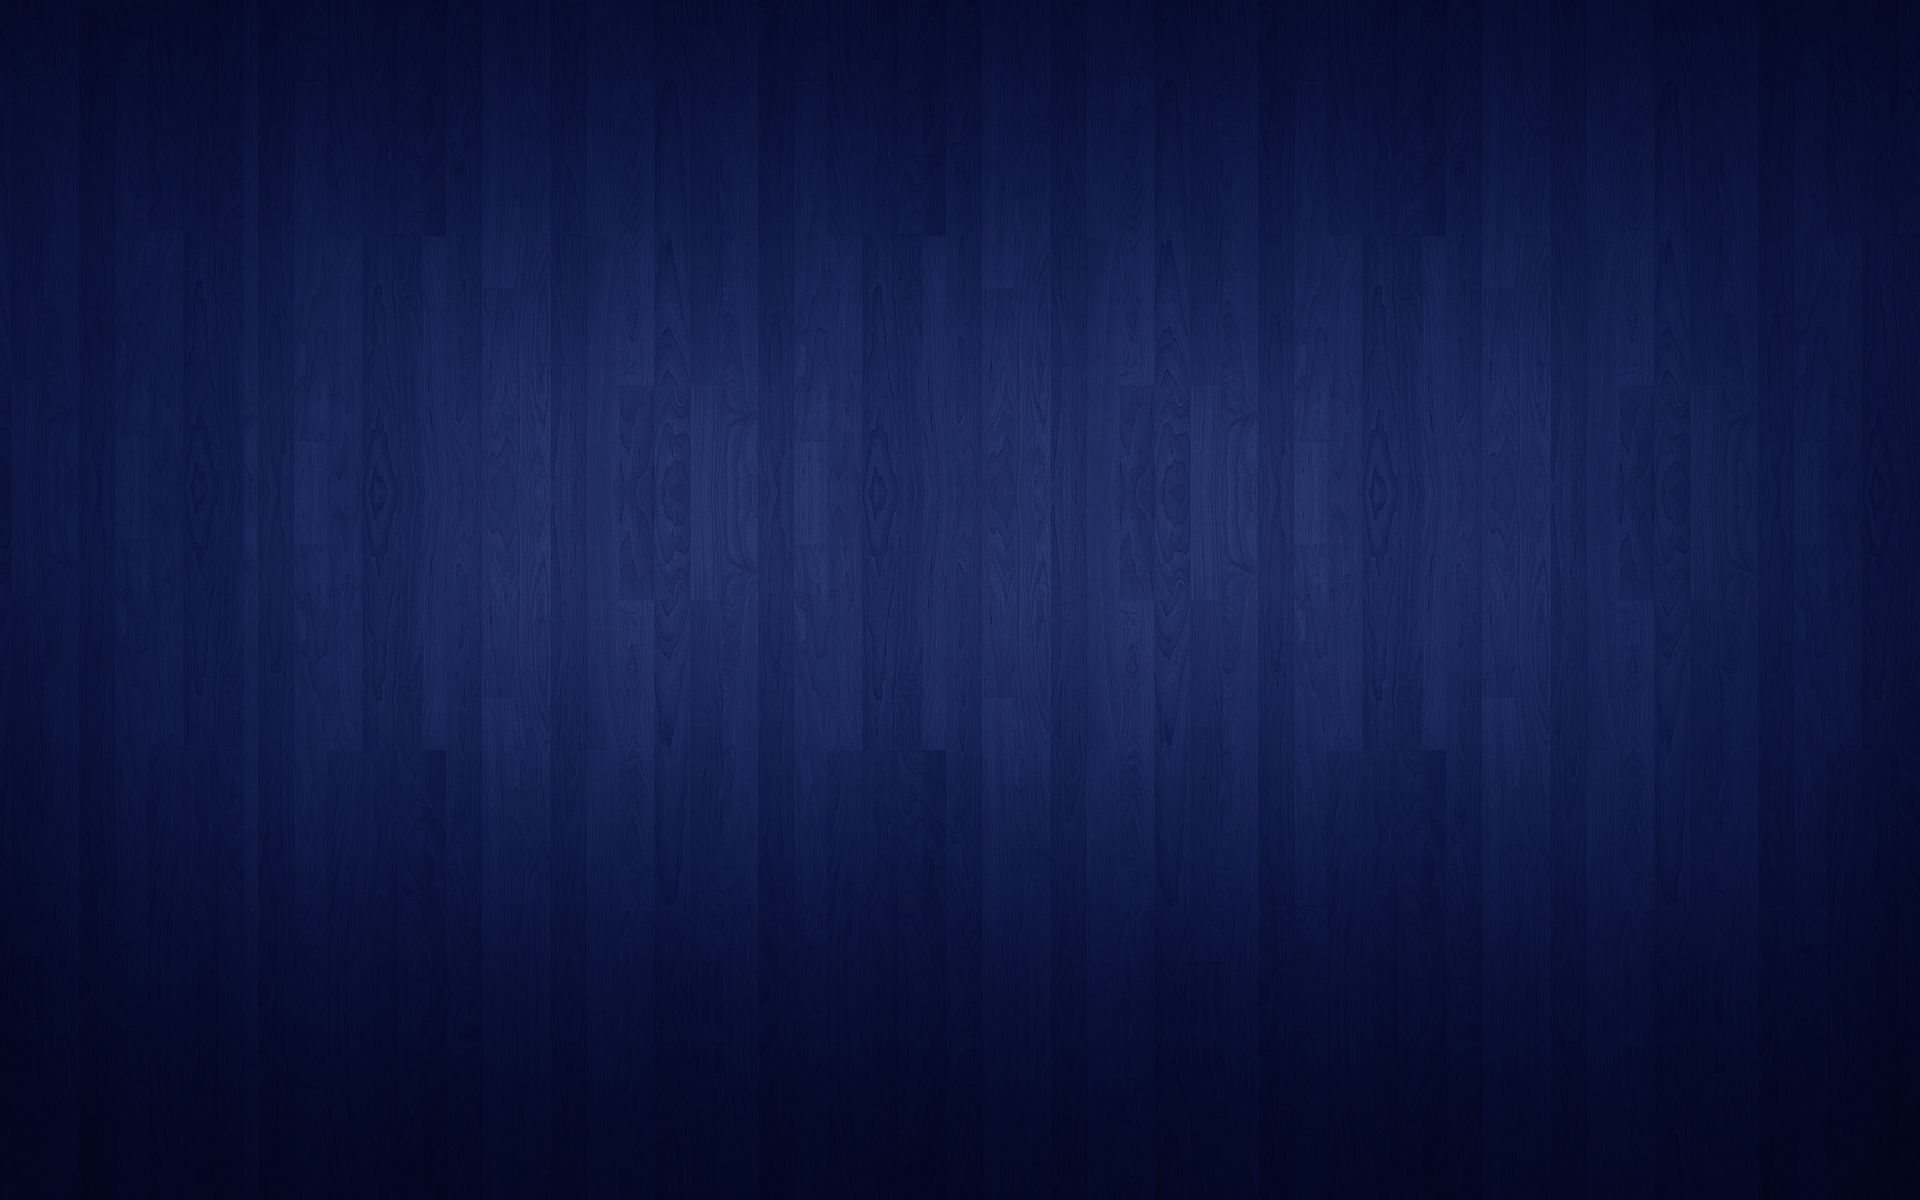 Hd Wallpapers For Android Free Download Best Background Images Navy Blue Navy Blue Backgrounds